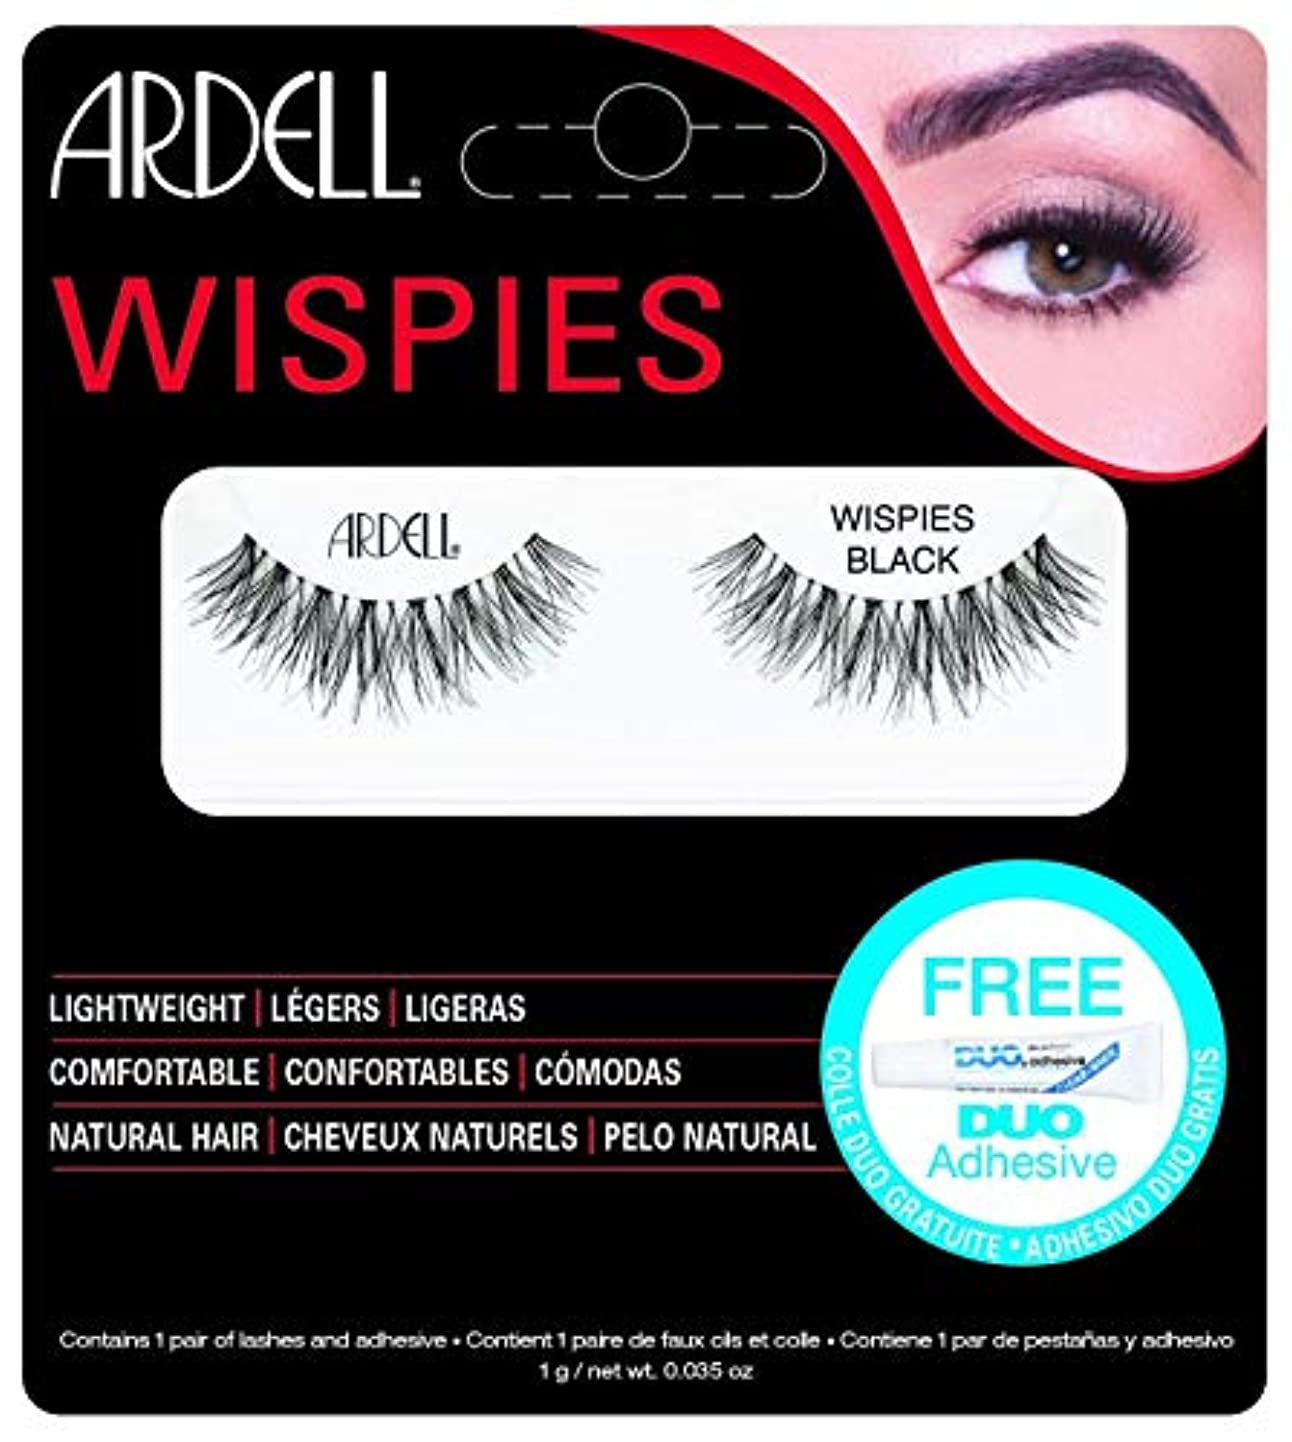 ARDELL False Eyelashes - Invisibands Wispies Black